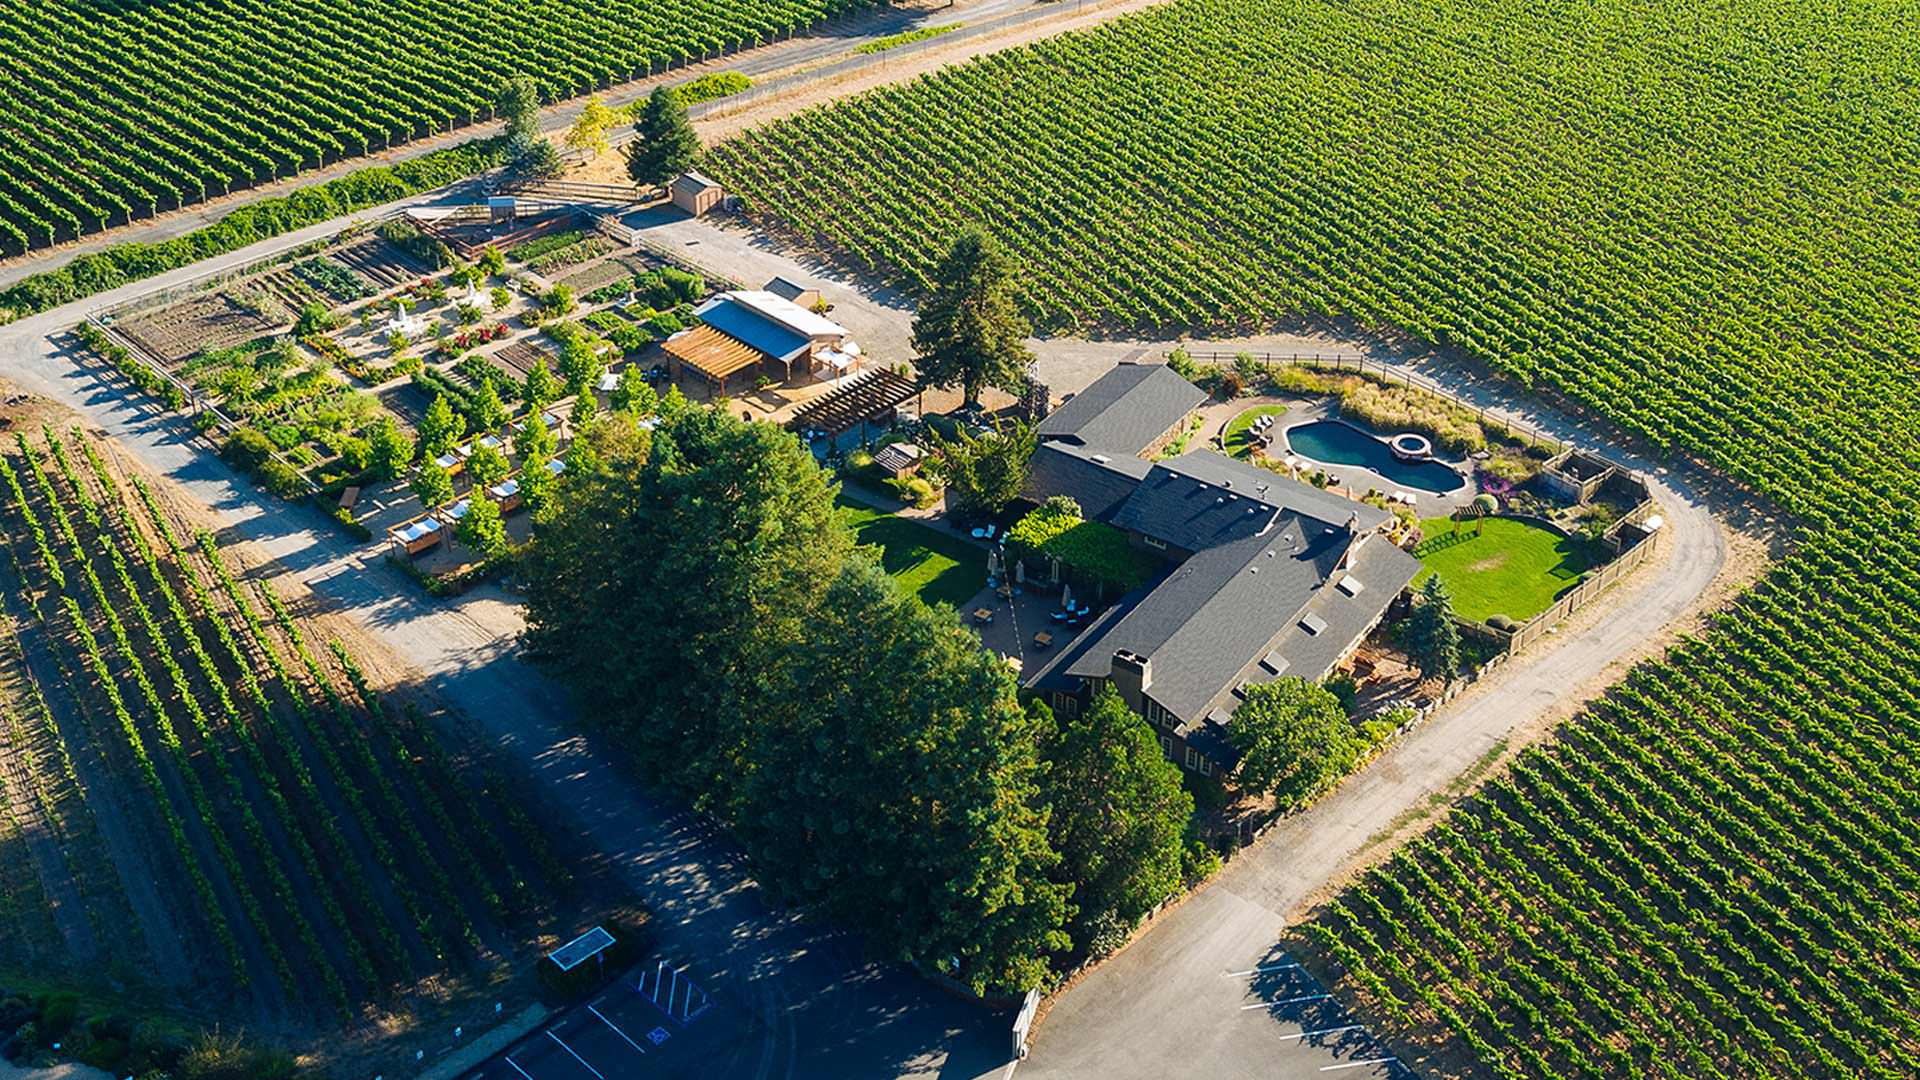 Experience The Renaissance Of Deloach Vineyards Please Join Us In Our Estate House For All New Seated Guided Tasting Experiences Click Here To Rsvp